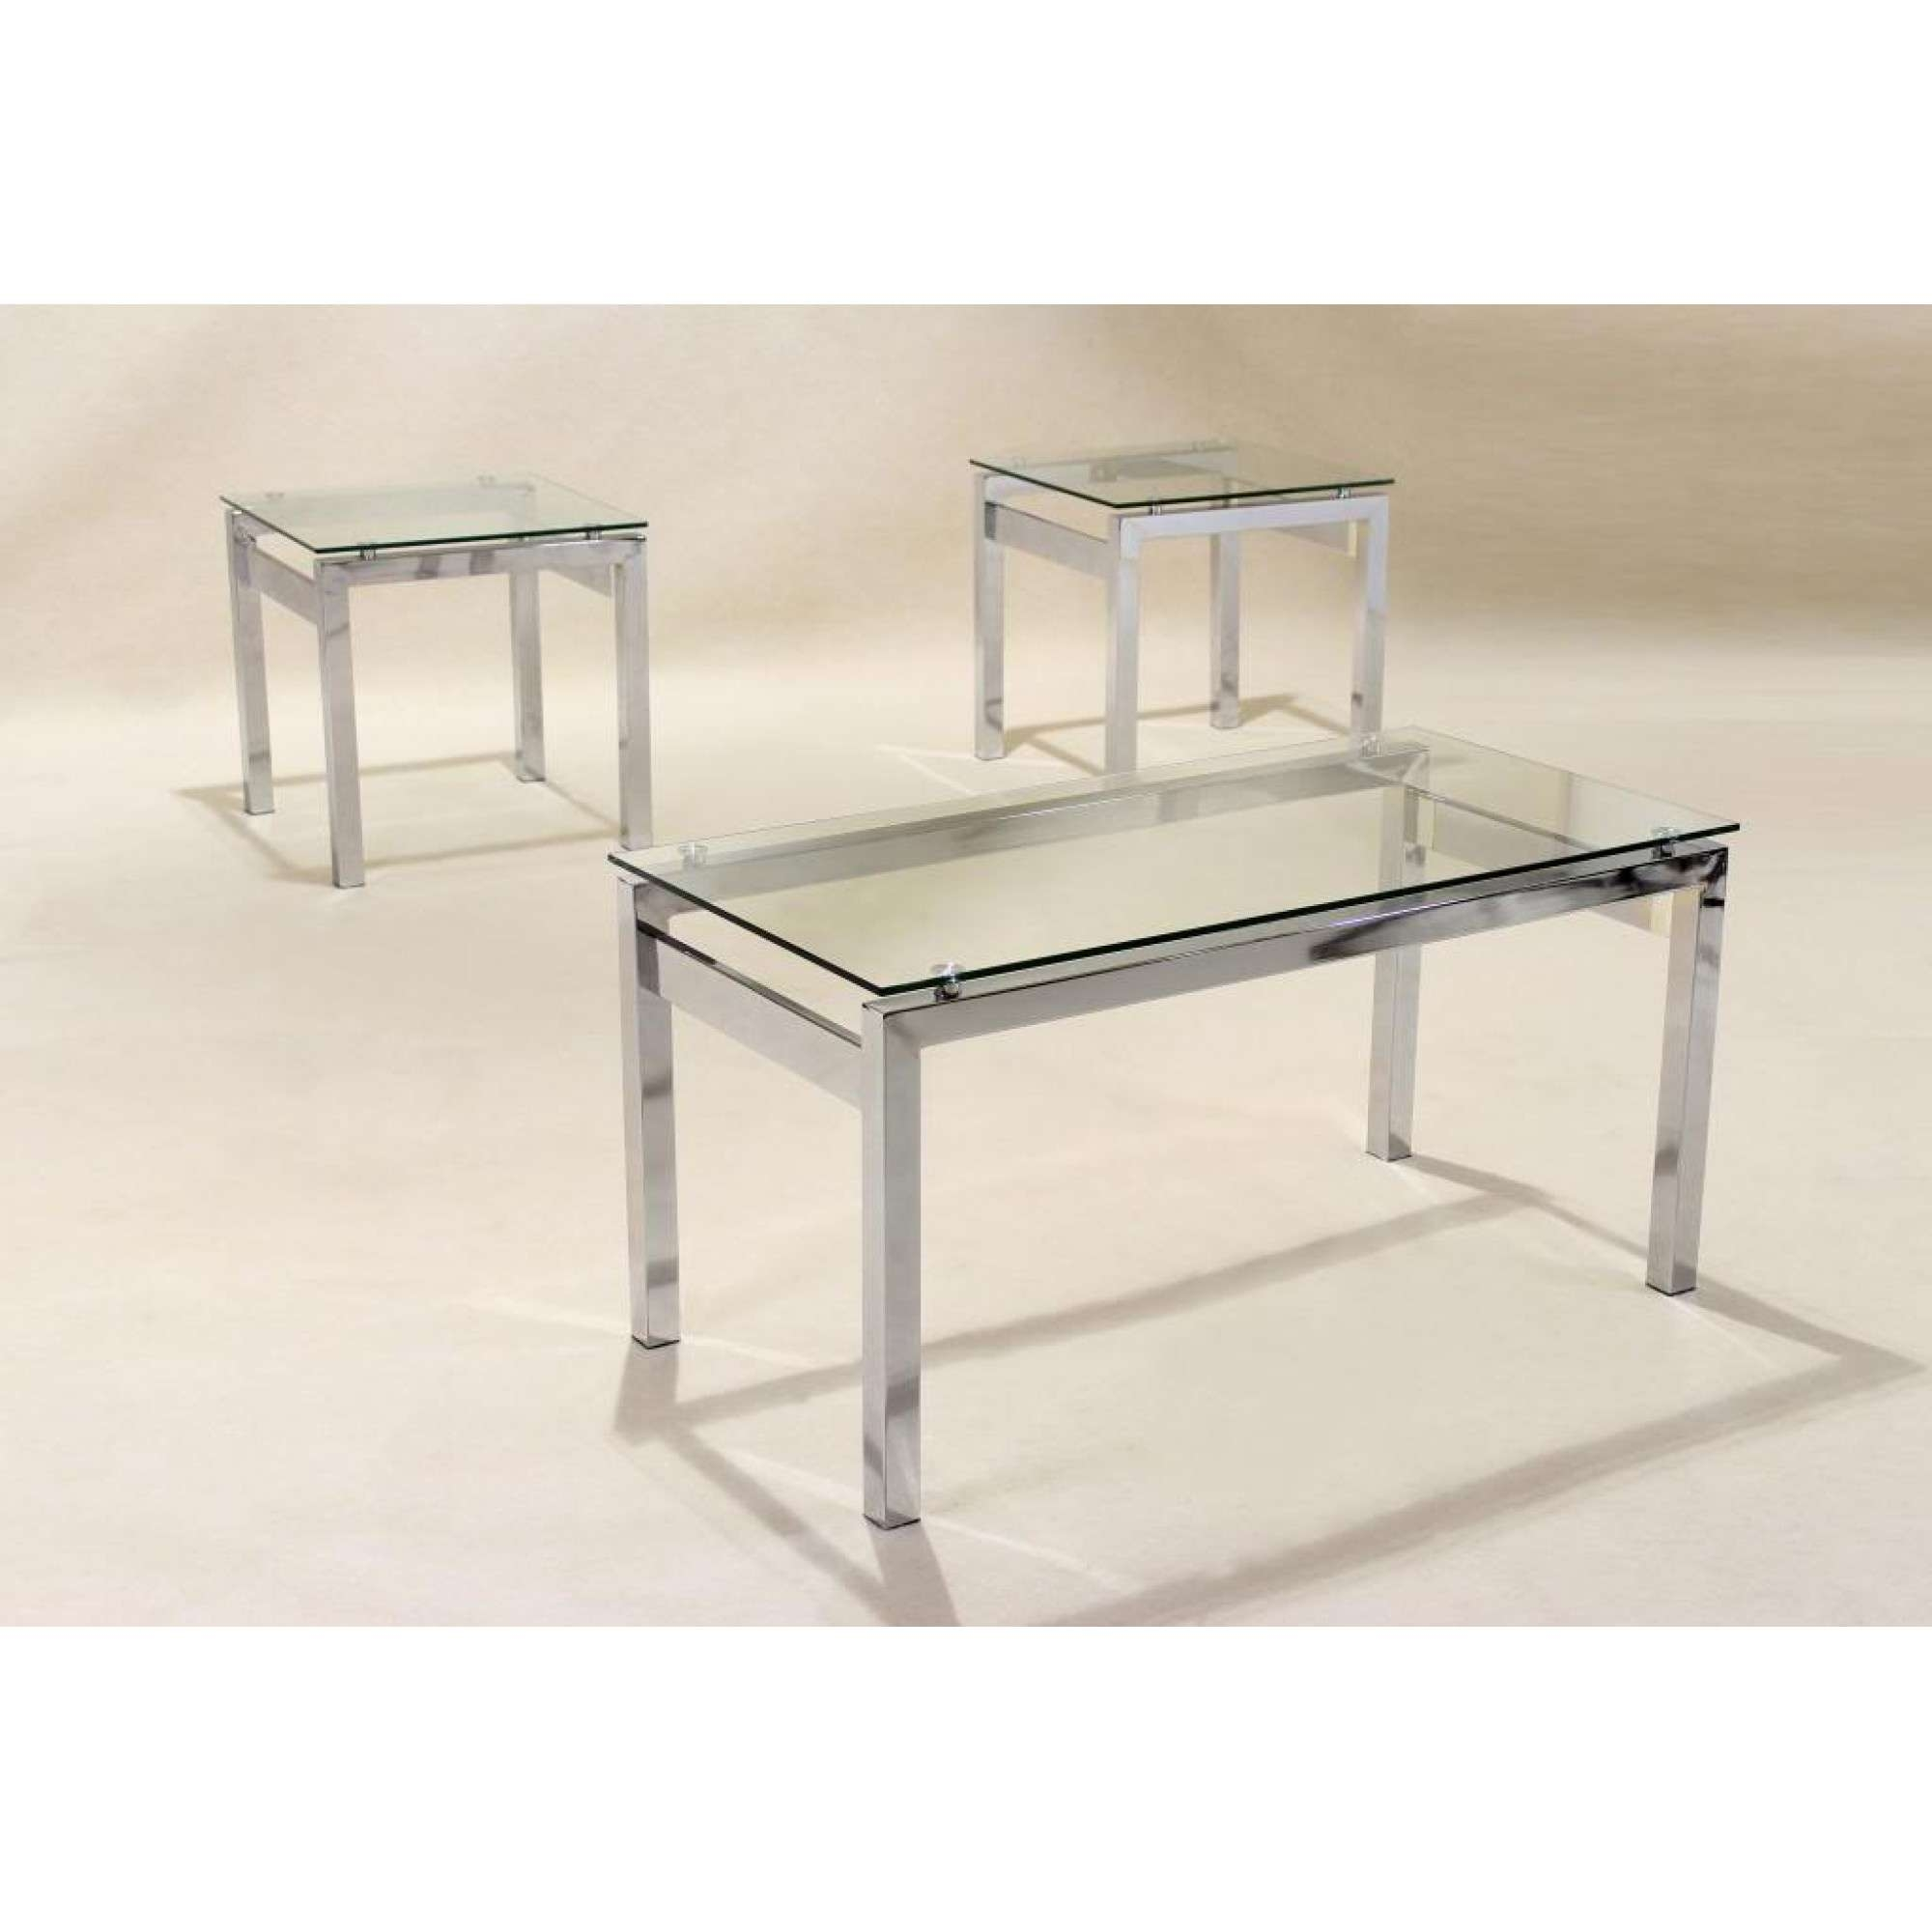 Coffee Table : Magnificent Wrought Iron Coffee Table Glass Coffee Within Popular White And Chrome Coffee Tables (View 3 of 20)